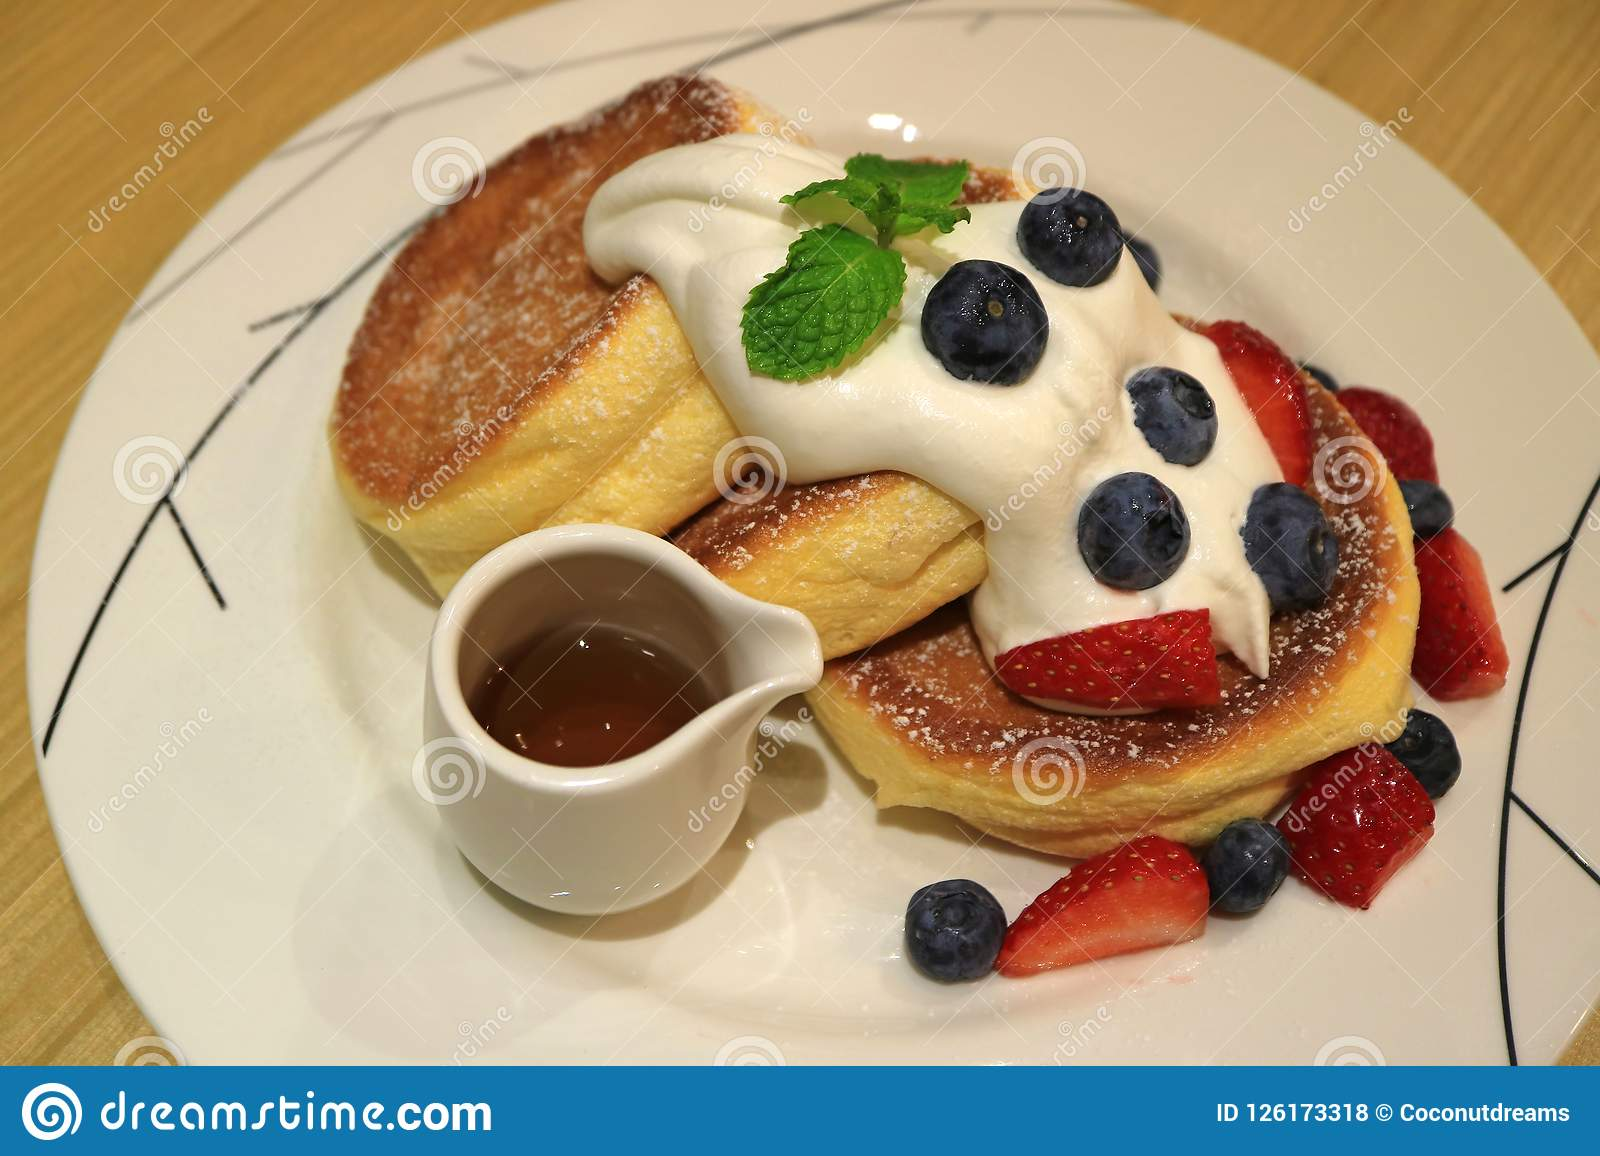 Delicious Souffle Pancake with Maple Syrup, Fresh Whipped Cream and Mix Berries Served on white Plate